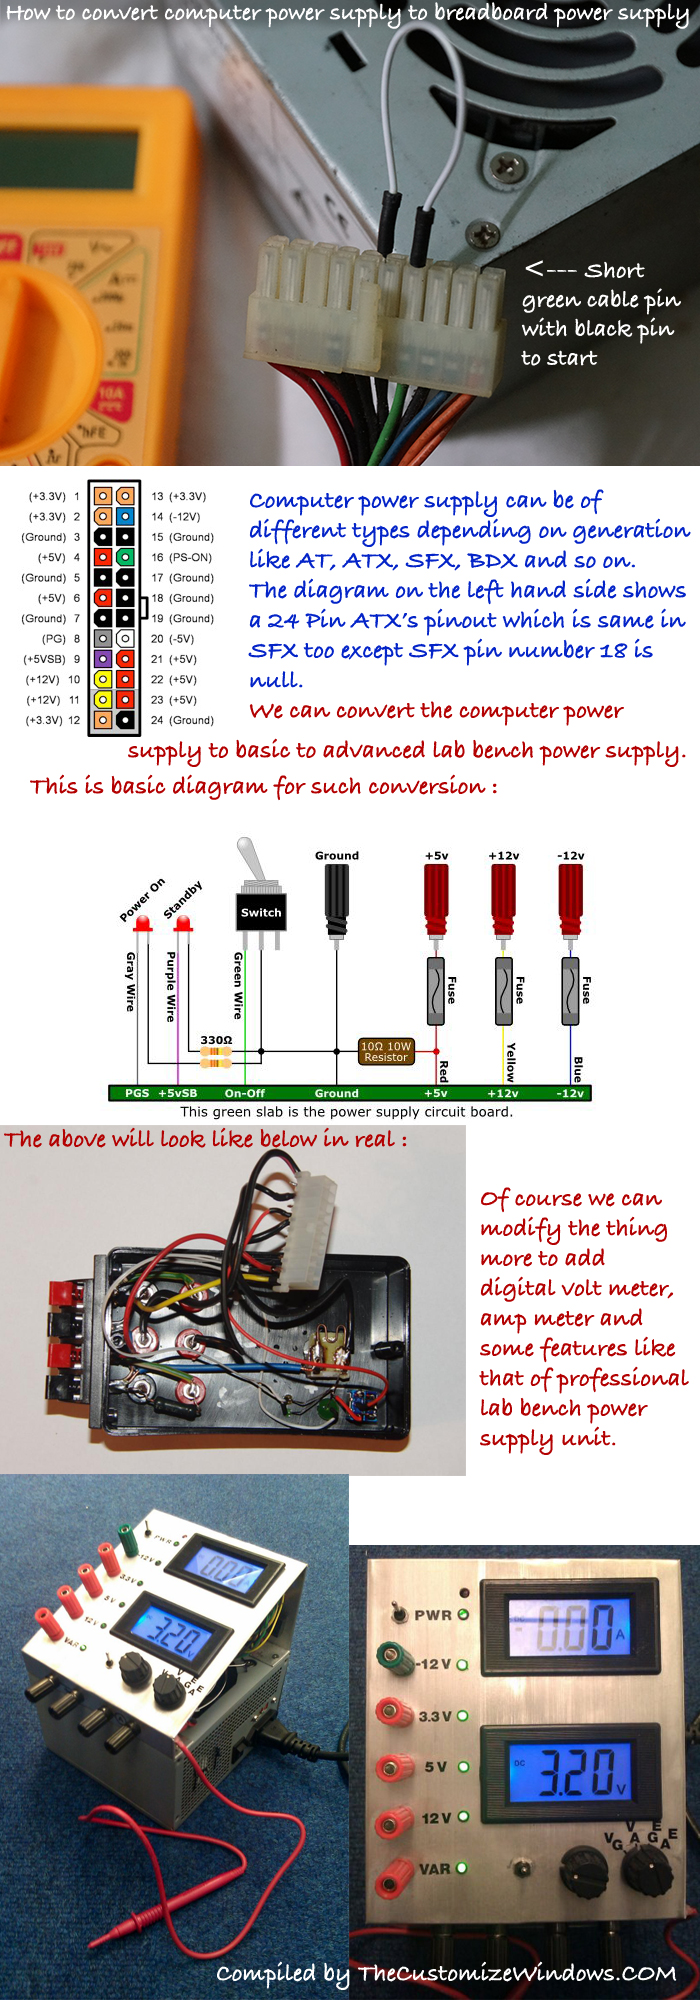 convert-computer-power-supply-to-breadboard-power-supply